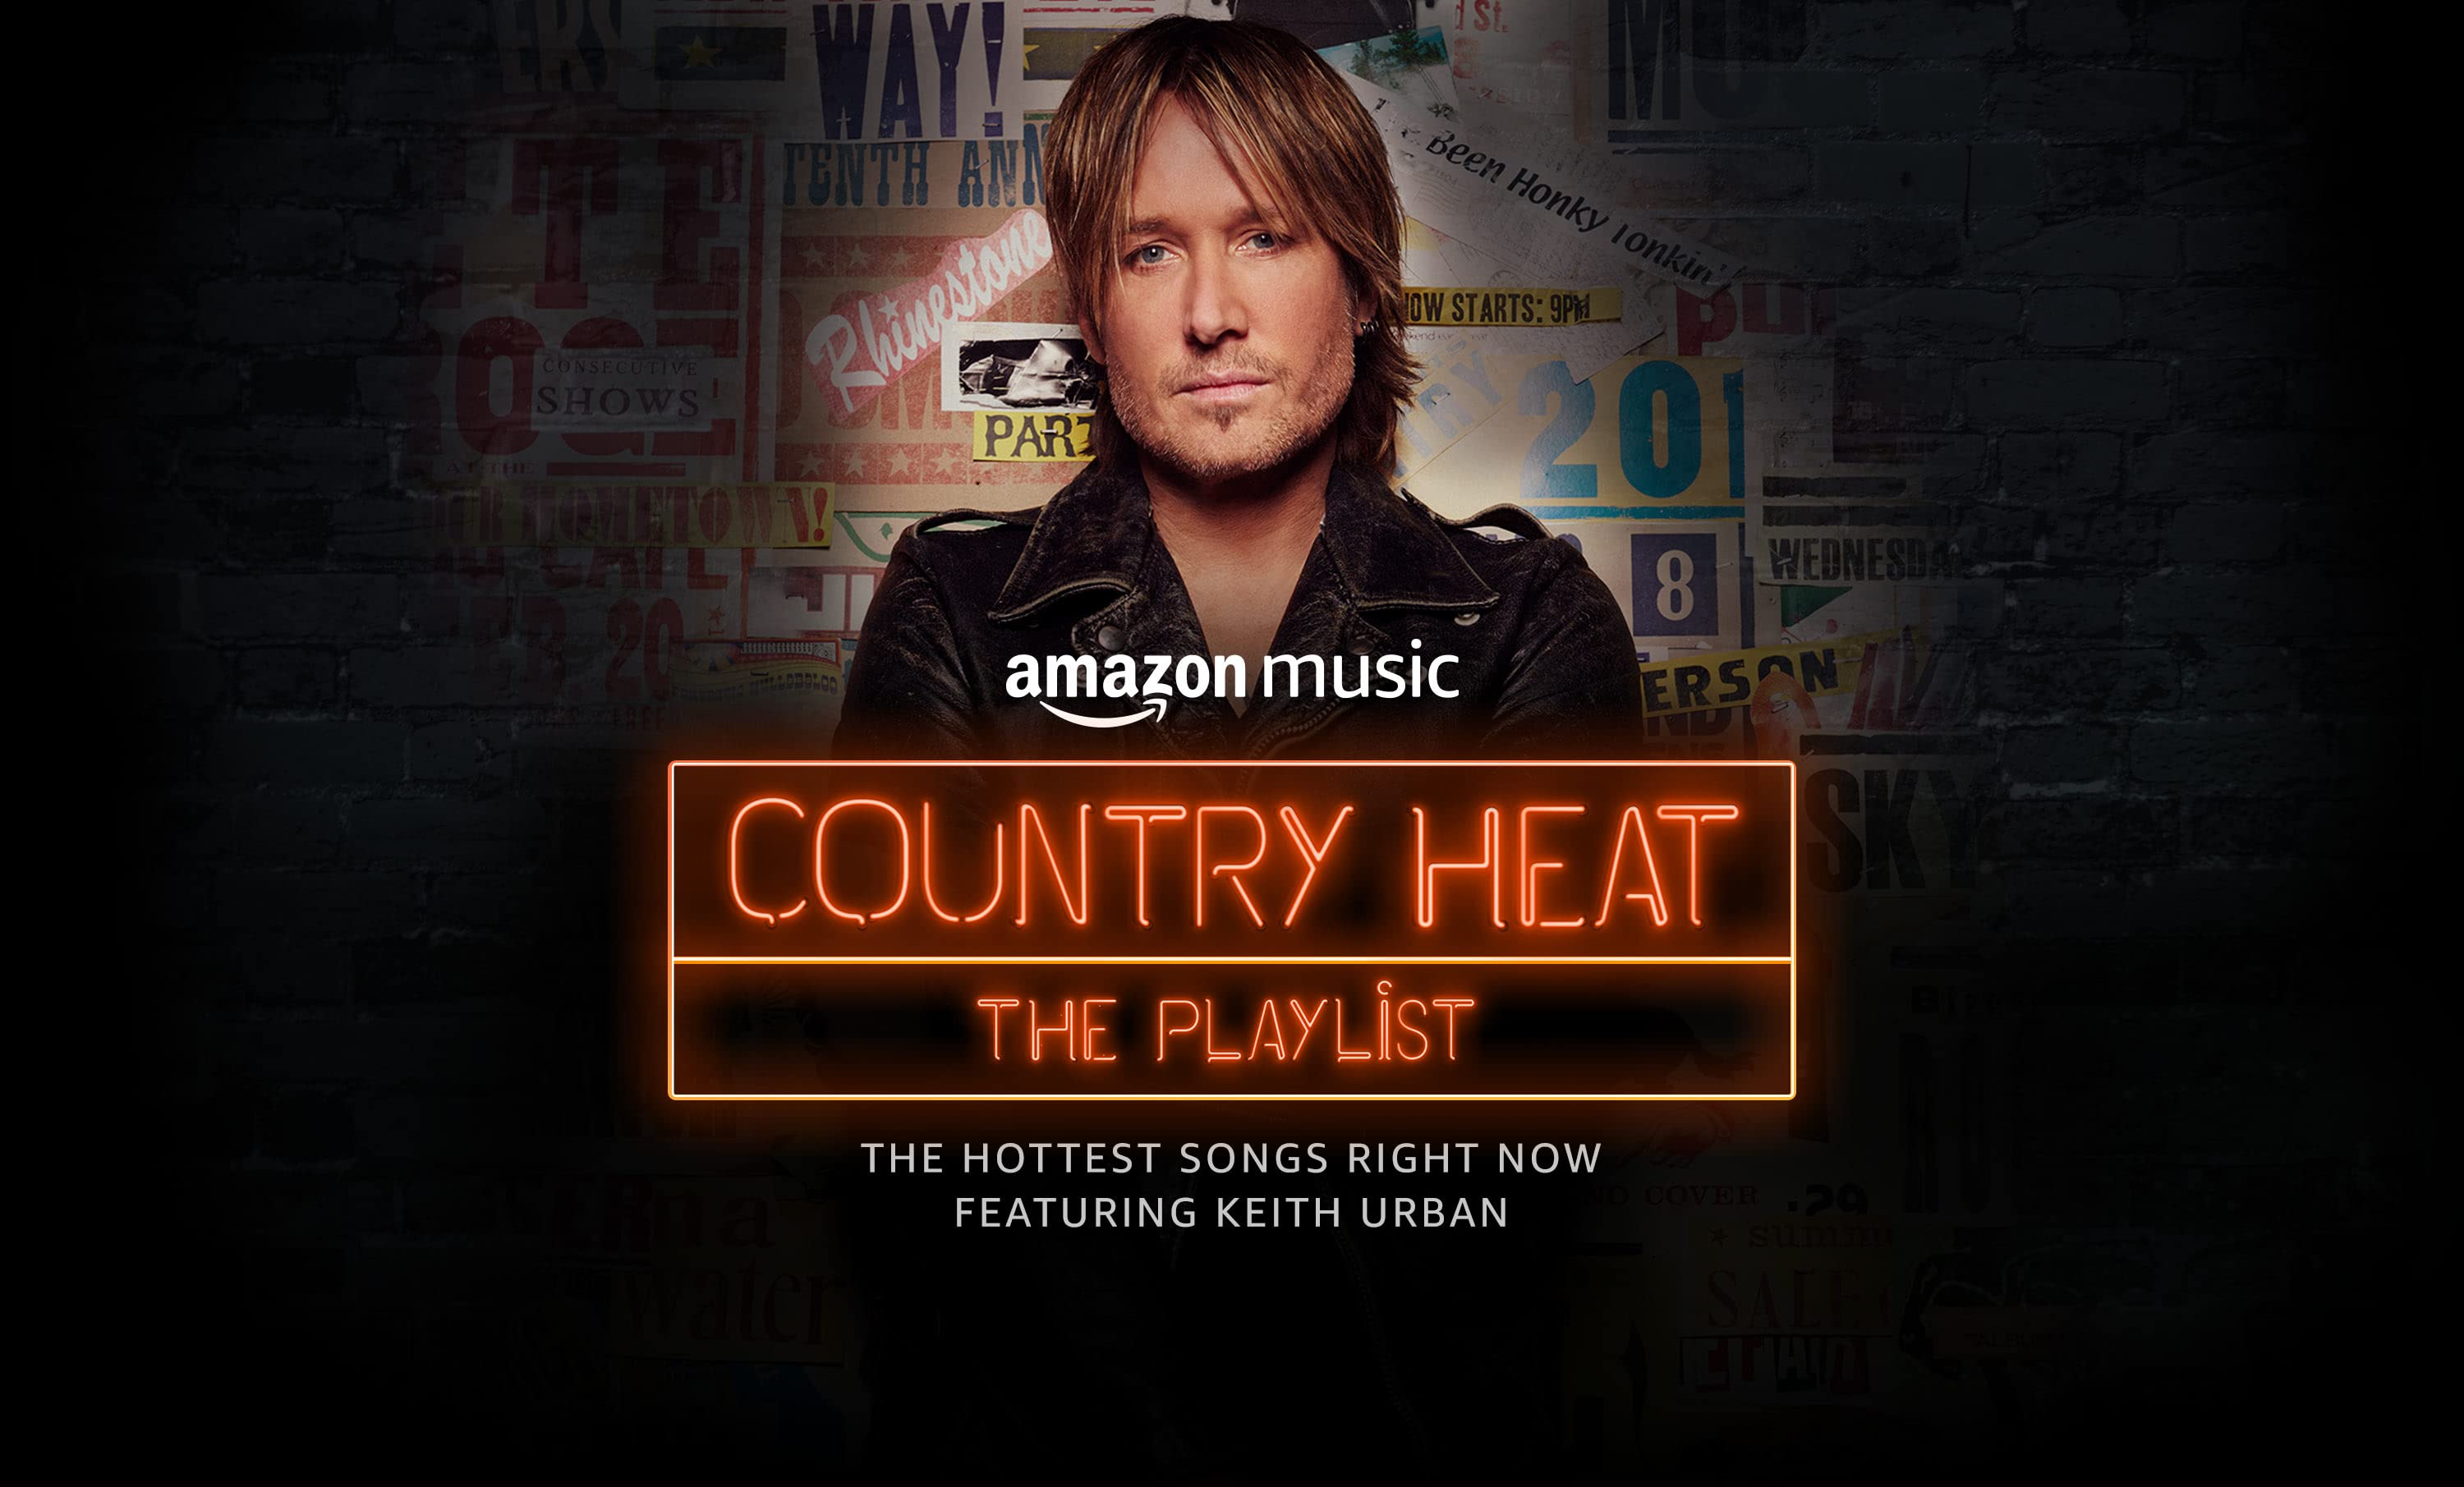 Amazon Music's Country Heat is a new playlist featuring the hottest songs right now